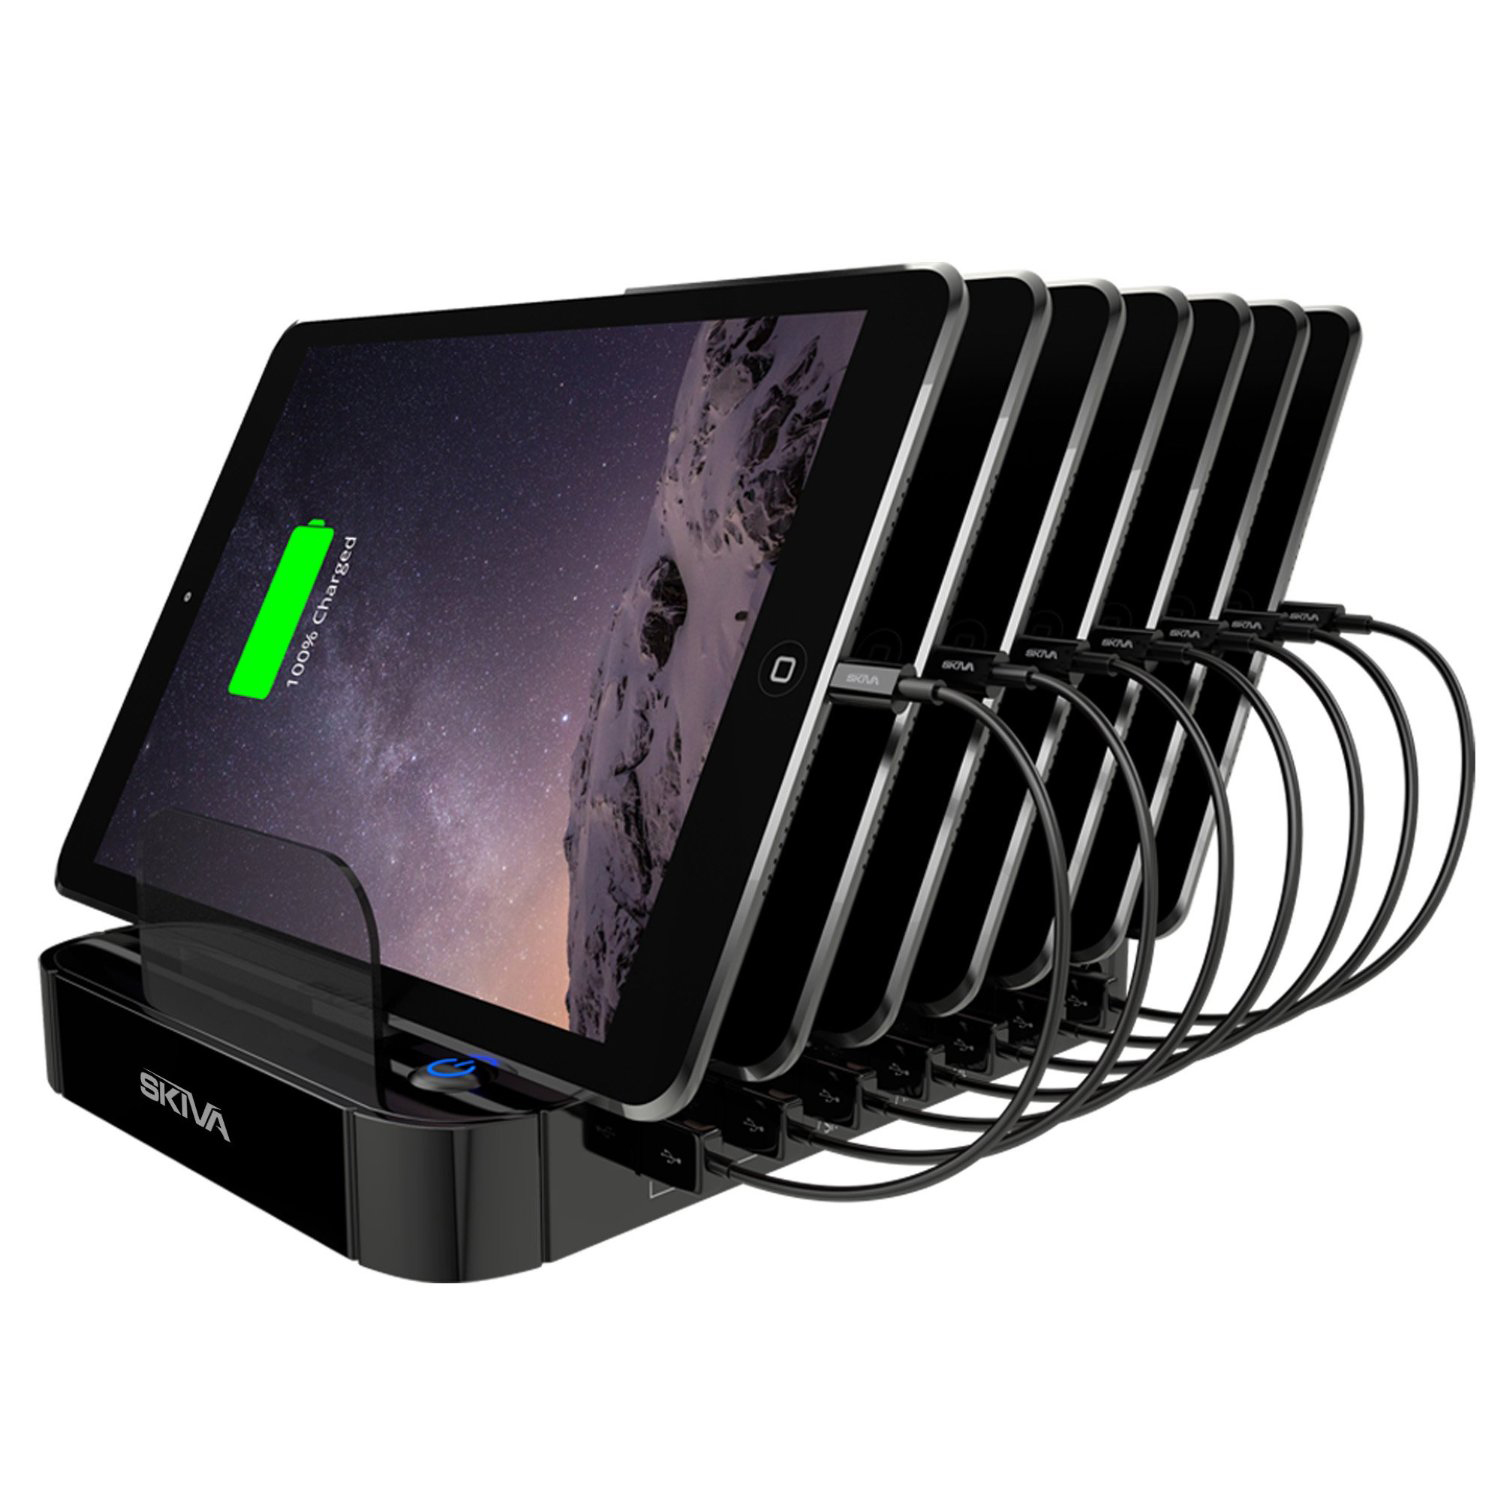 Review skiva standcharger 7 port multi usb charging station - Multi chargeur usb ...